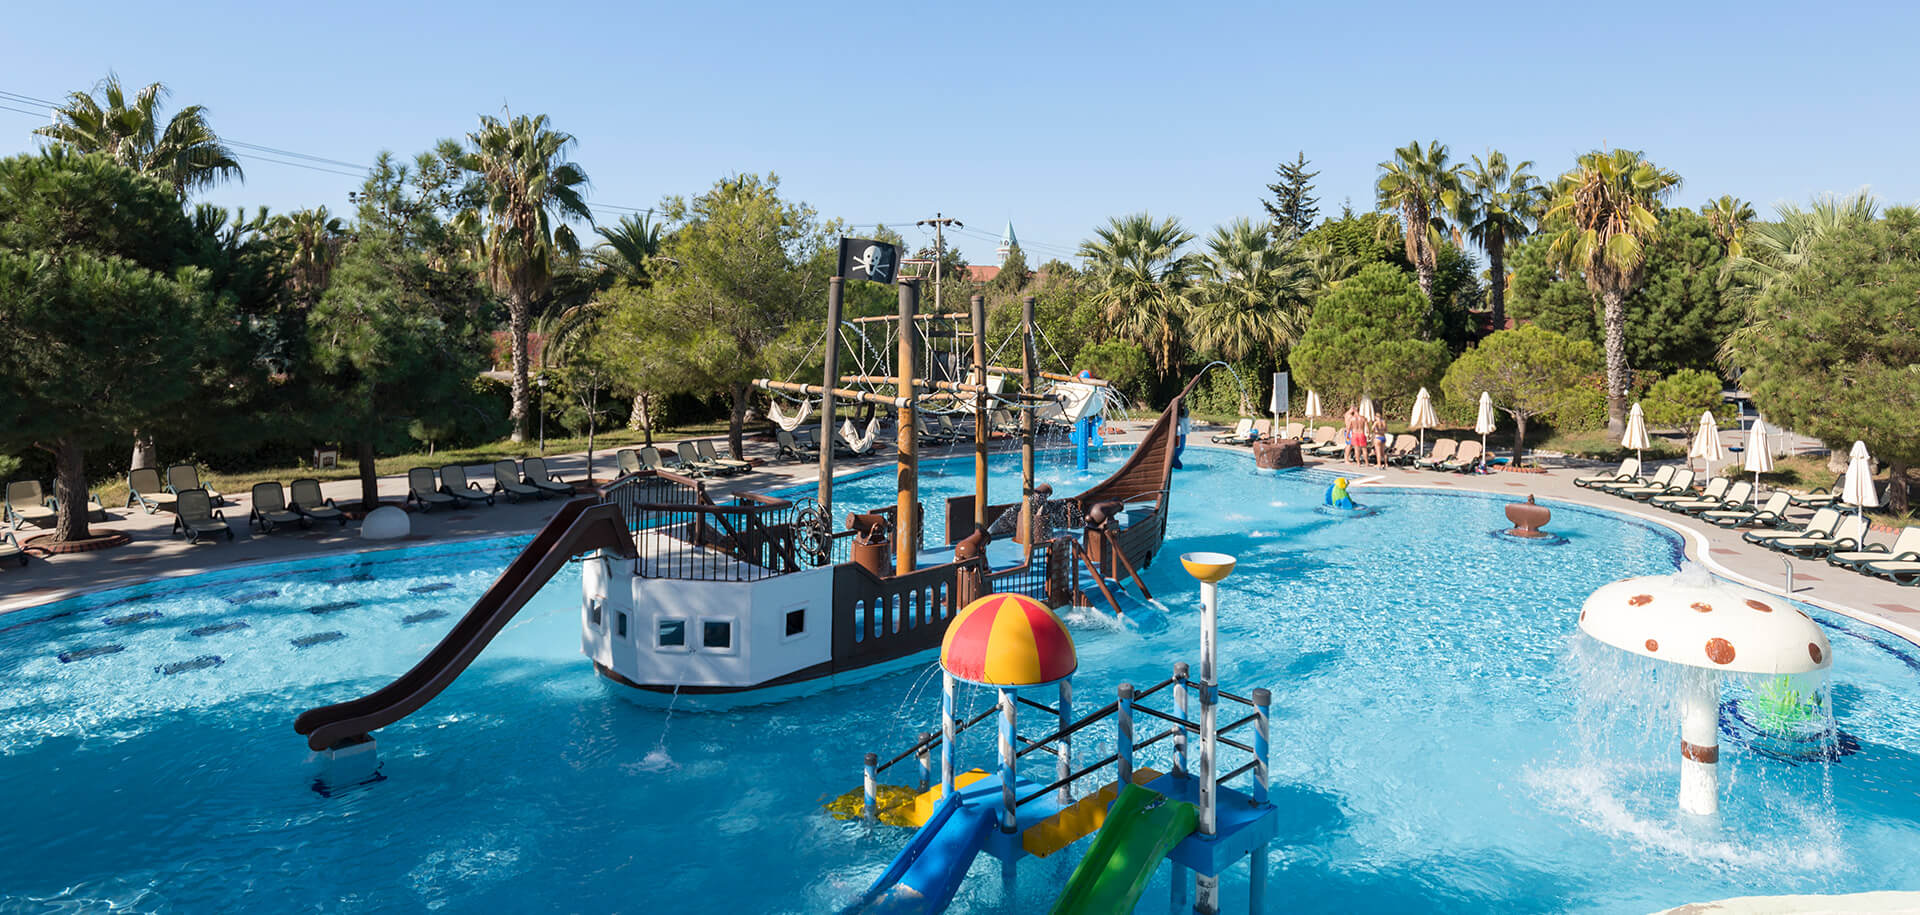 Come and splash around at our fun and an adrenaline-packed huge aquapark, which is one of Turkey's largest waterparks.